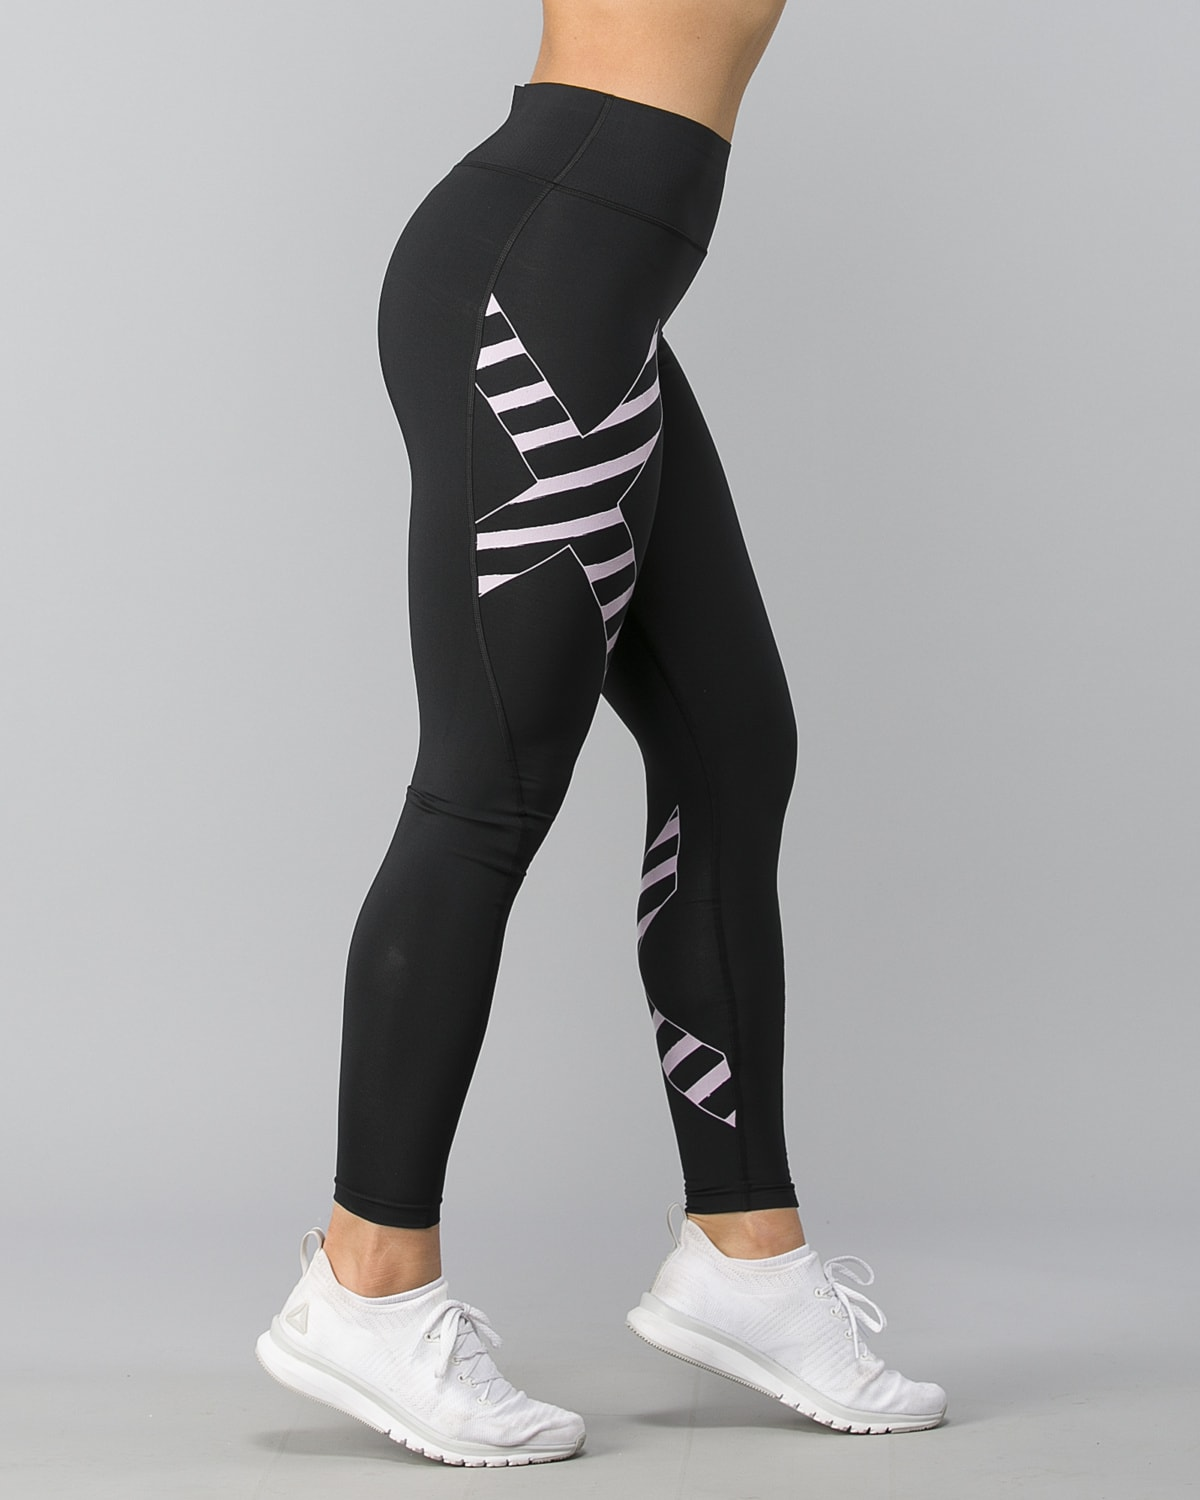 2XU-Bonded-Midrise-Comp-Tights-W–Black-Paint-Stripes-Wndsome-Orchid3